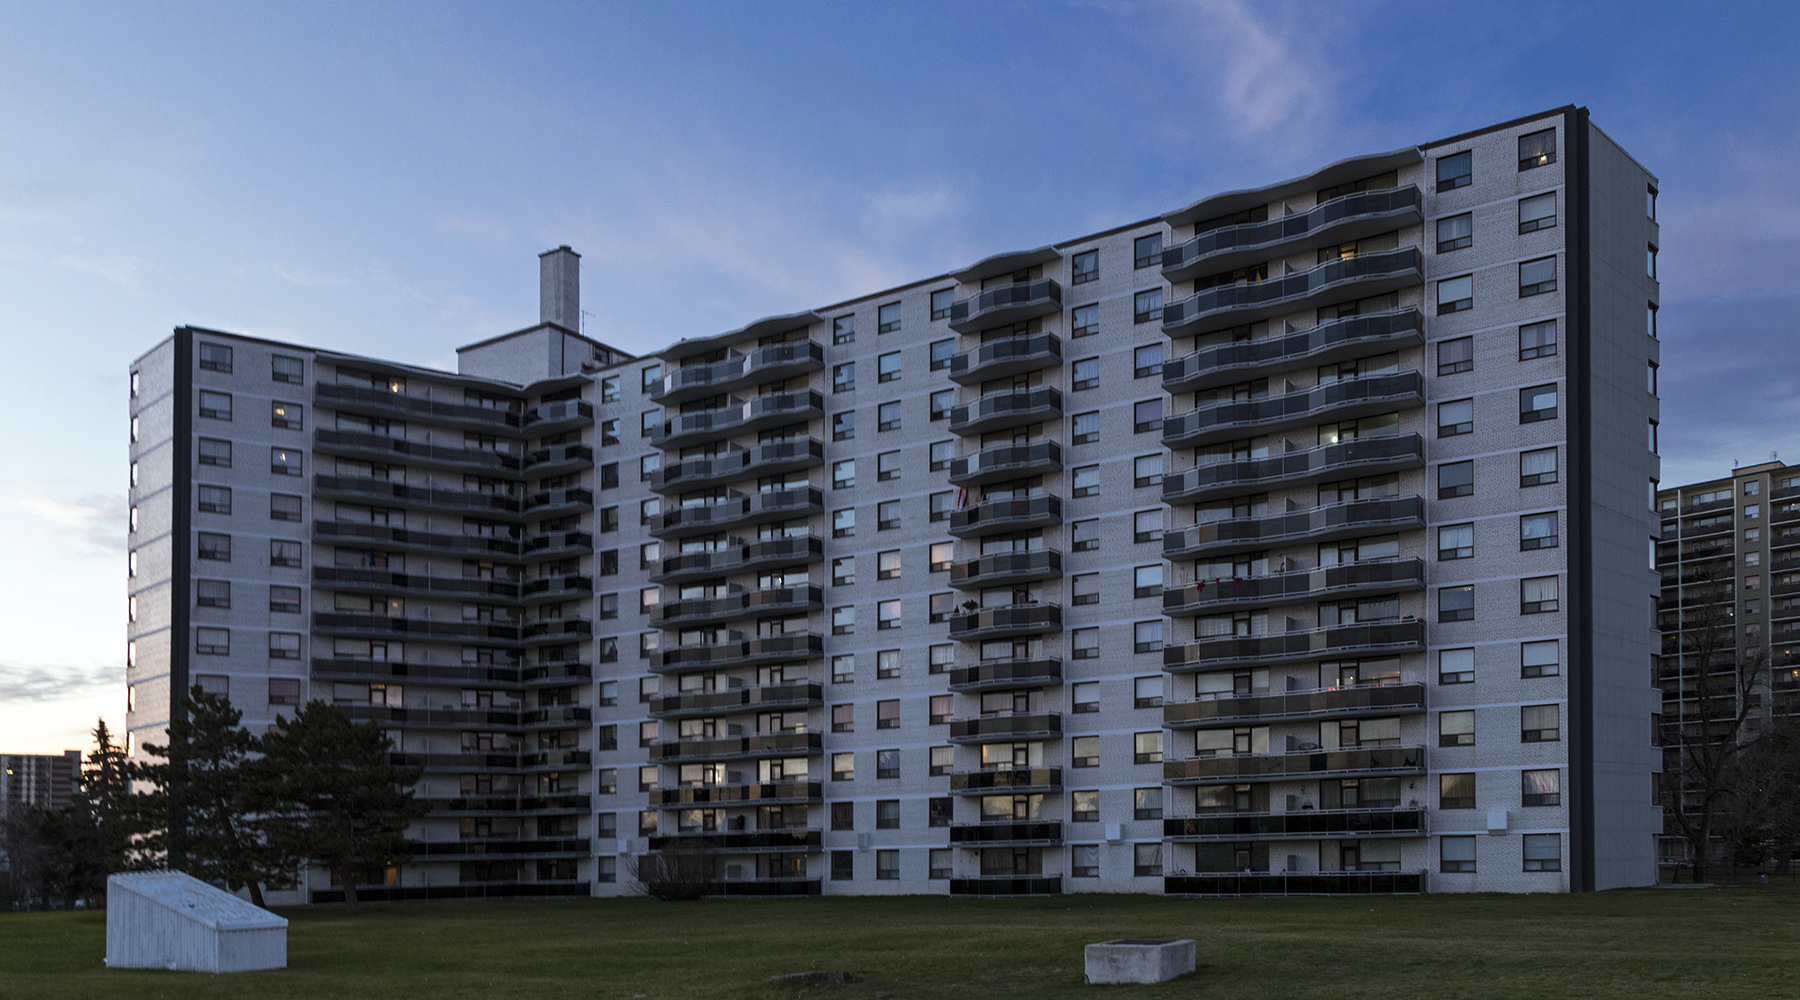 20151227. The modernist Bellamy Towers of Scarborough Village.